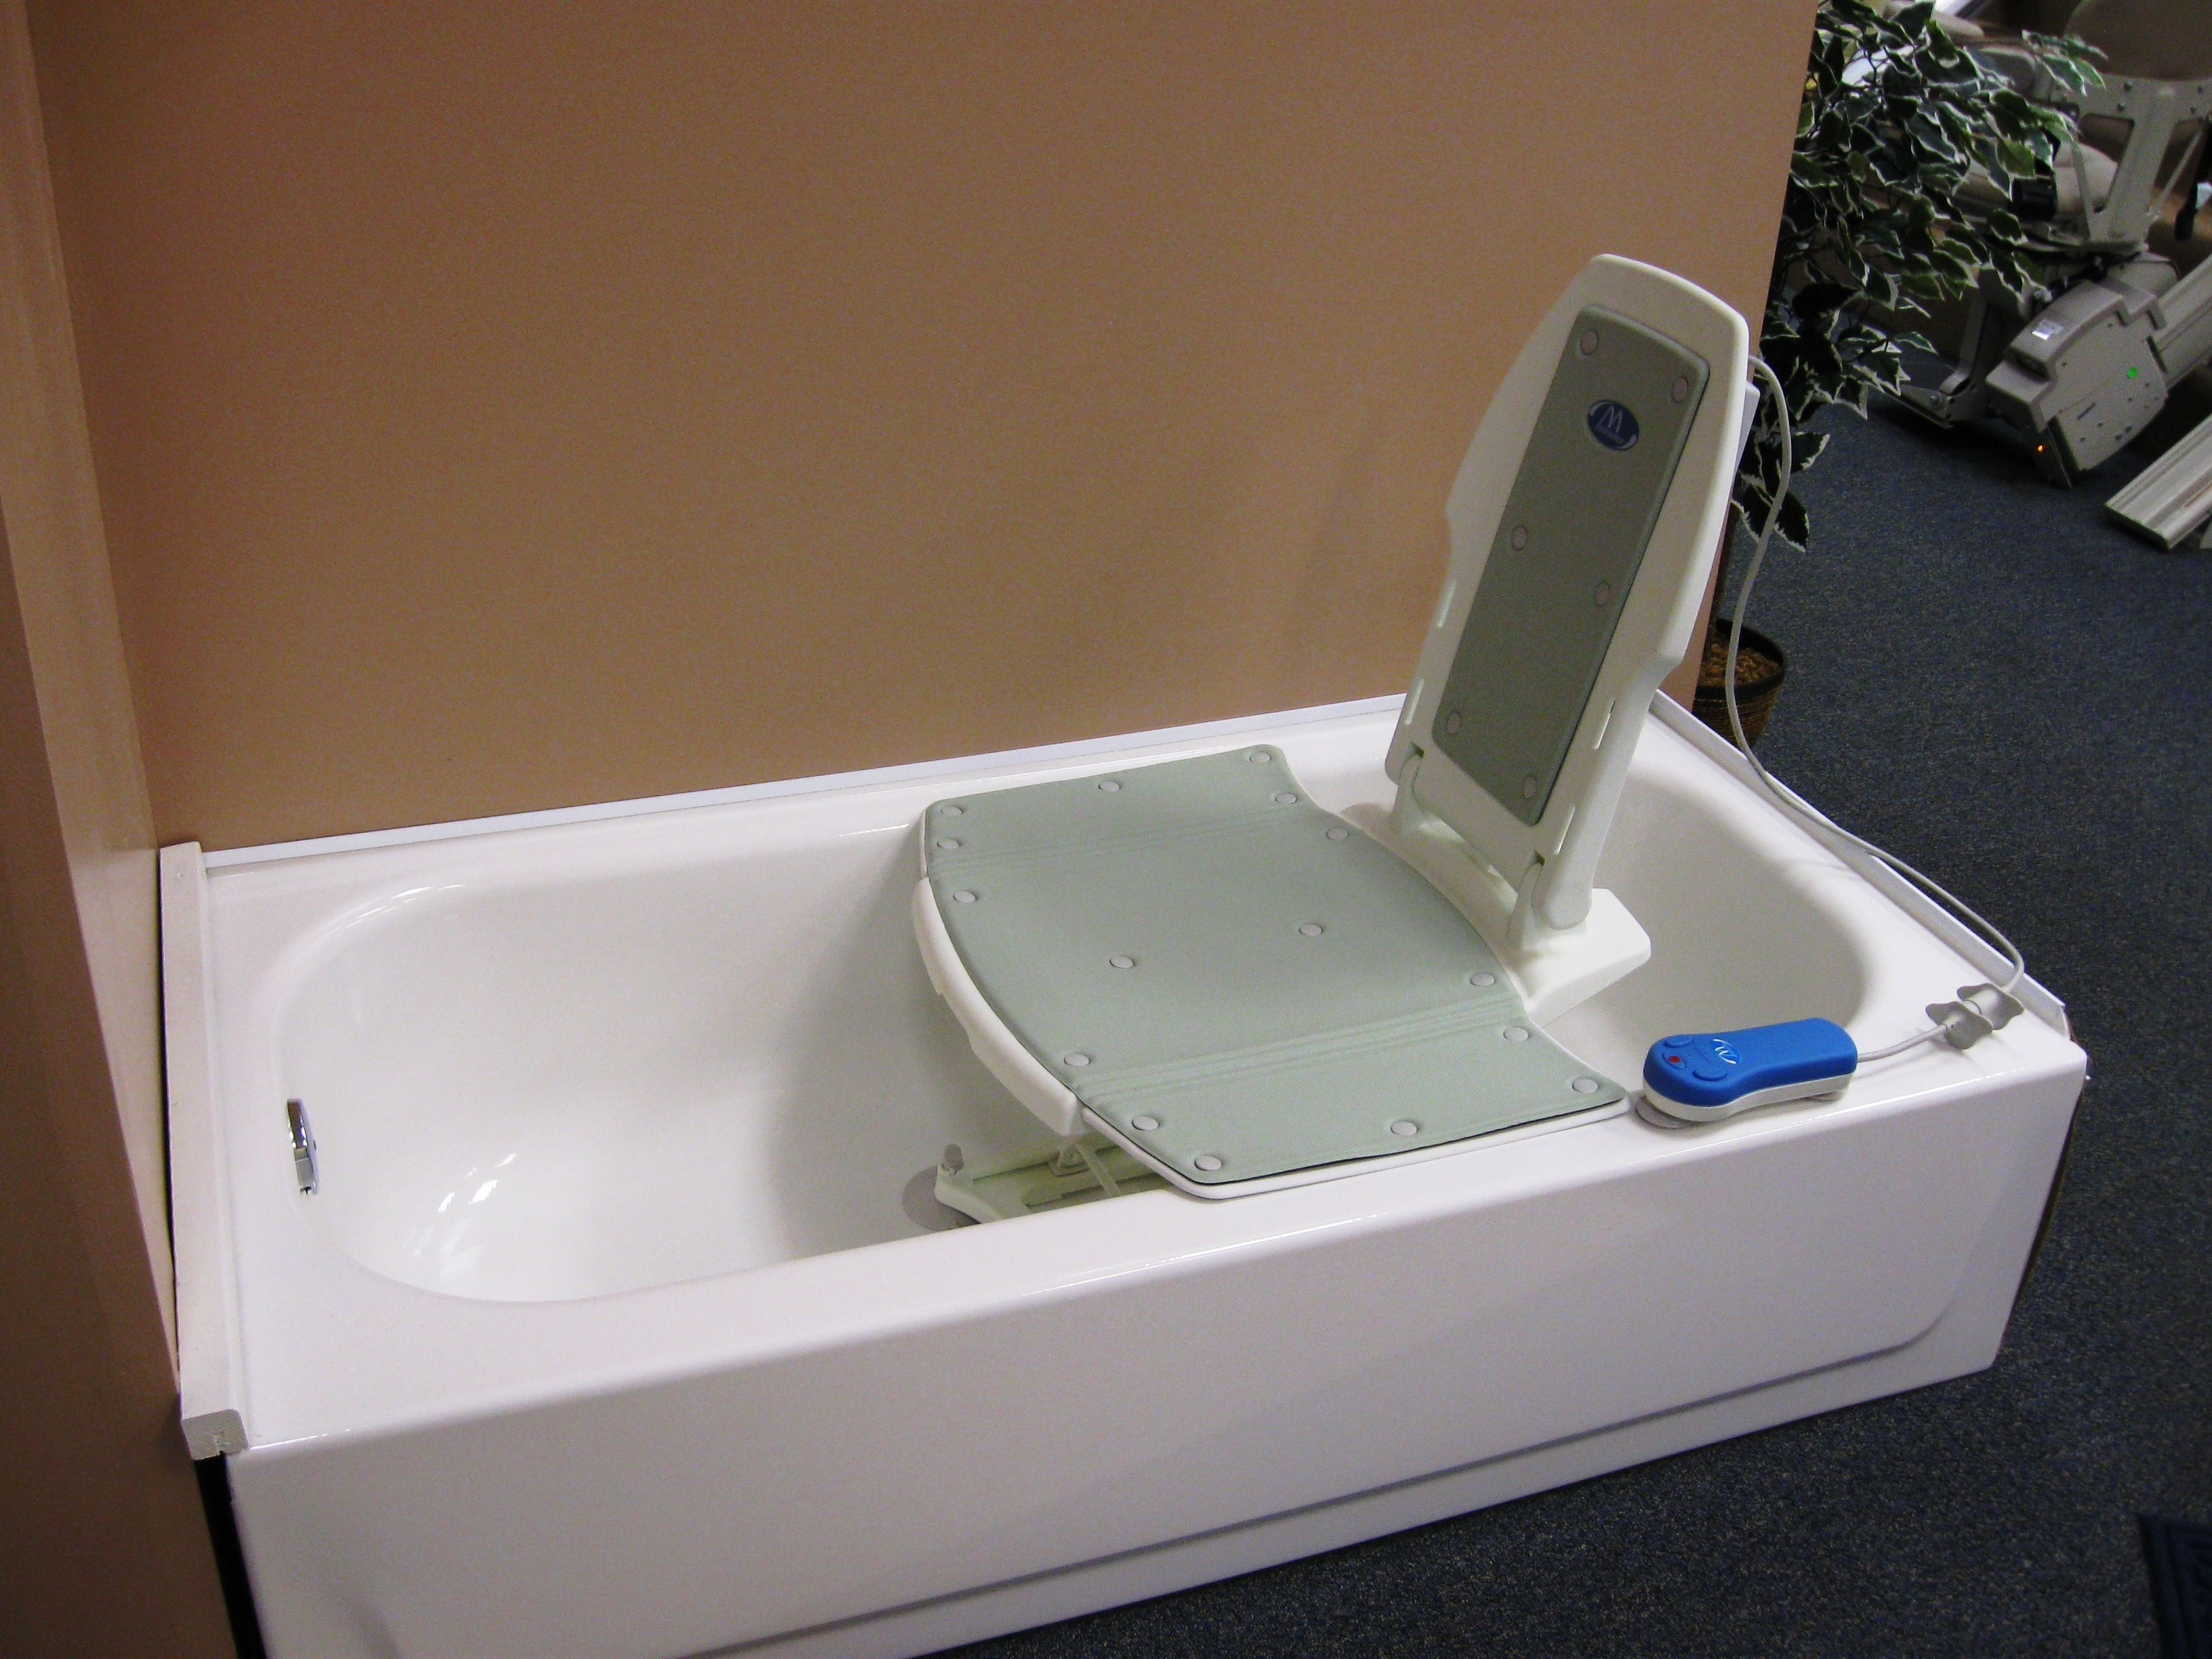 Handicap Bath Chair Handicap Bath Lift Chairs Bathtublifts Gt Gt See More At